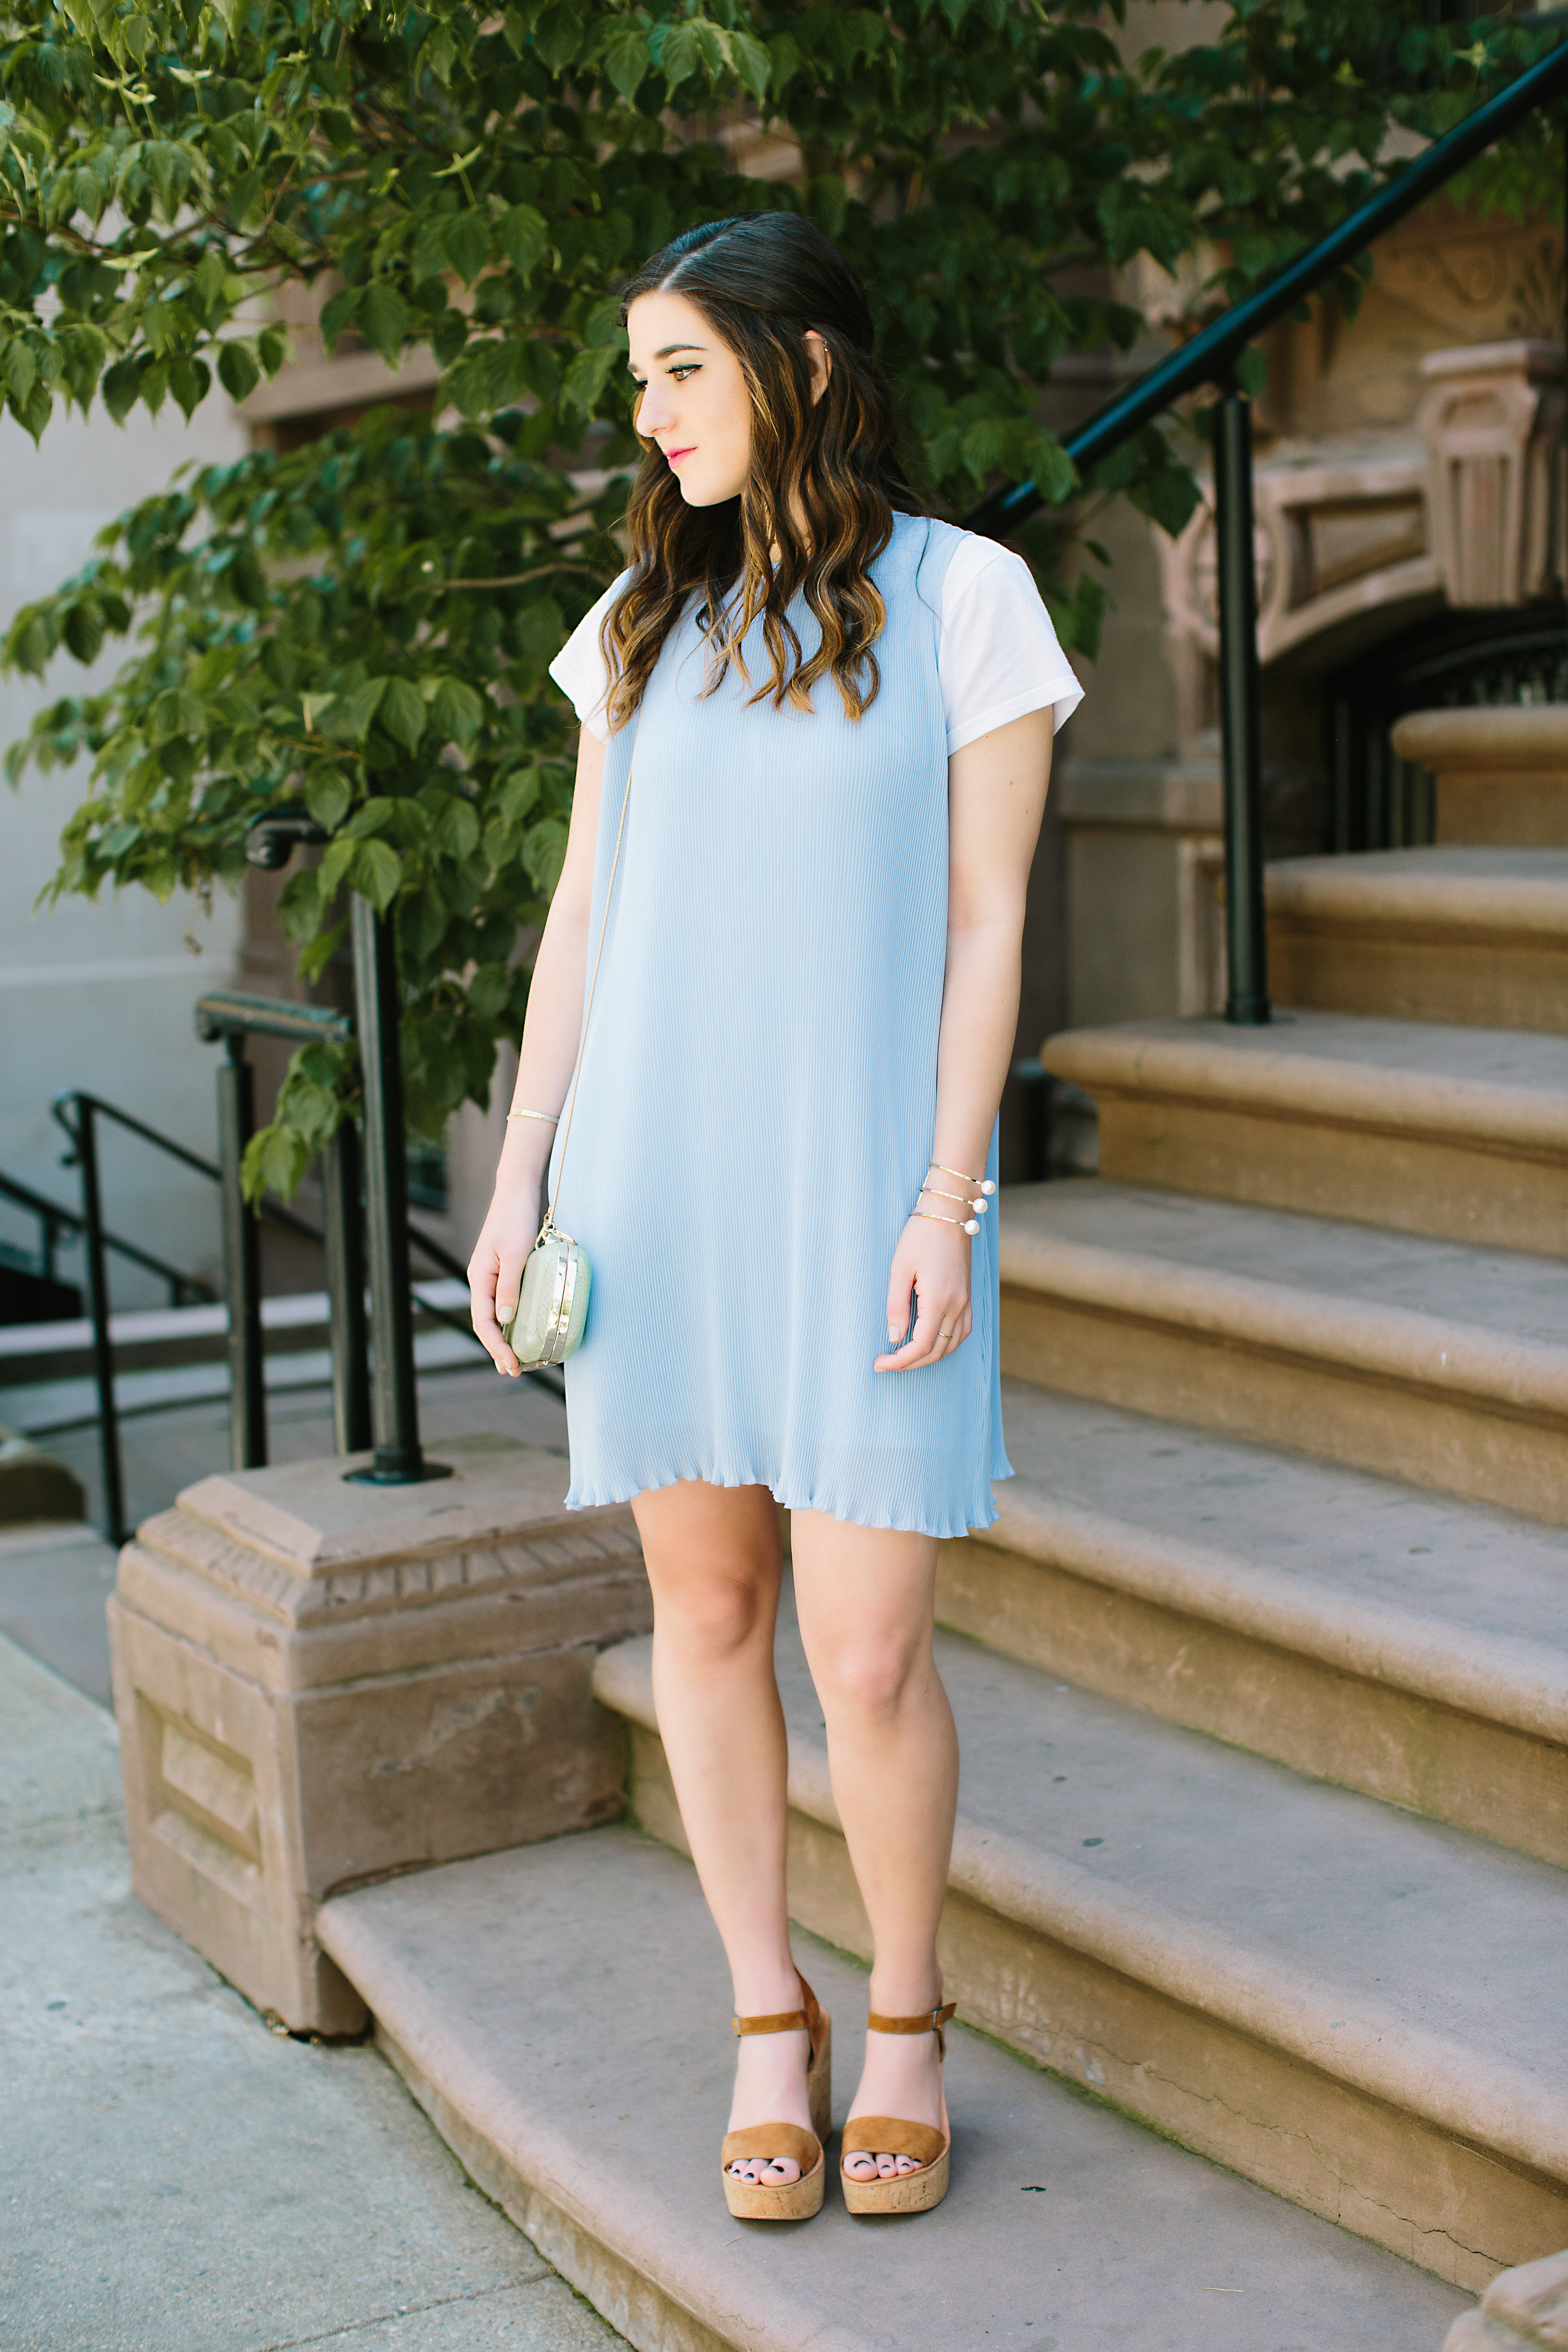 Pastel Blue Pleated Dress Keepsake The Label Louboutins & Love Fashion Blog Esther Santer NYC Street Style Blogger Outfit OOTD Pretty Photoshoot Upper East Side Dolce Vita Wedges Gold Jewelry Clutch Club Monaco Women White Tee Shirt Summer Look Inspo.jpg